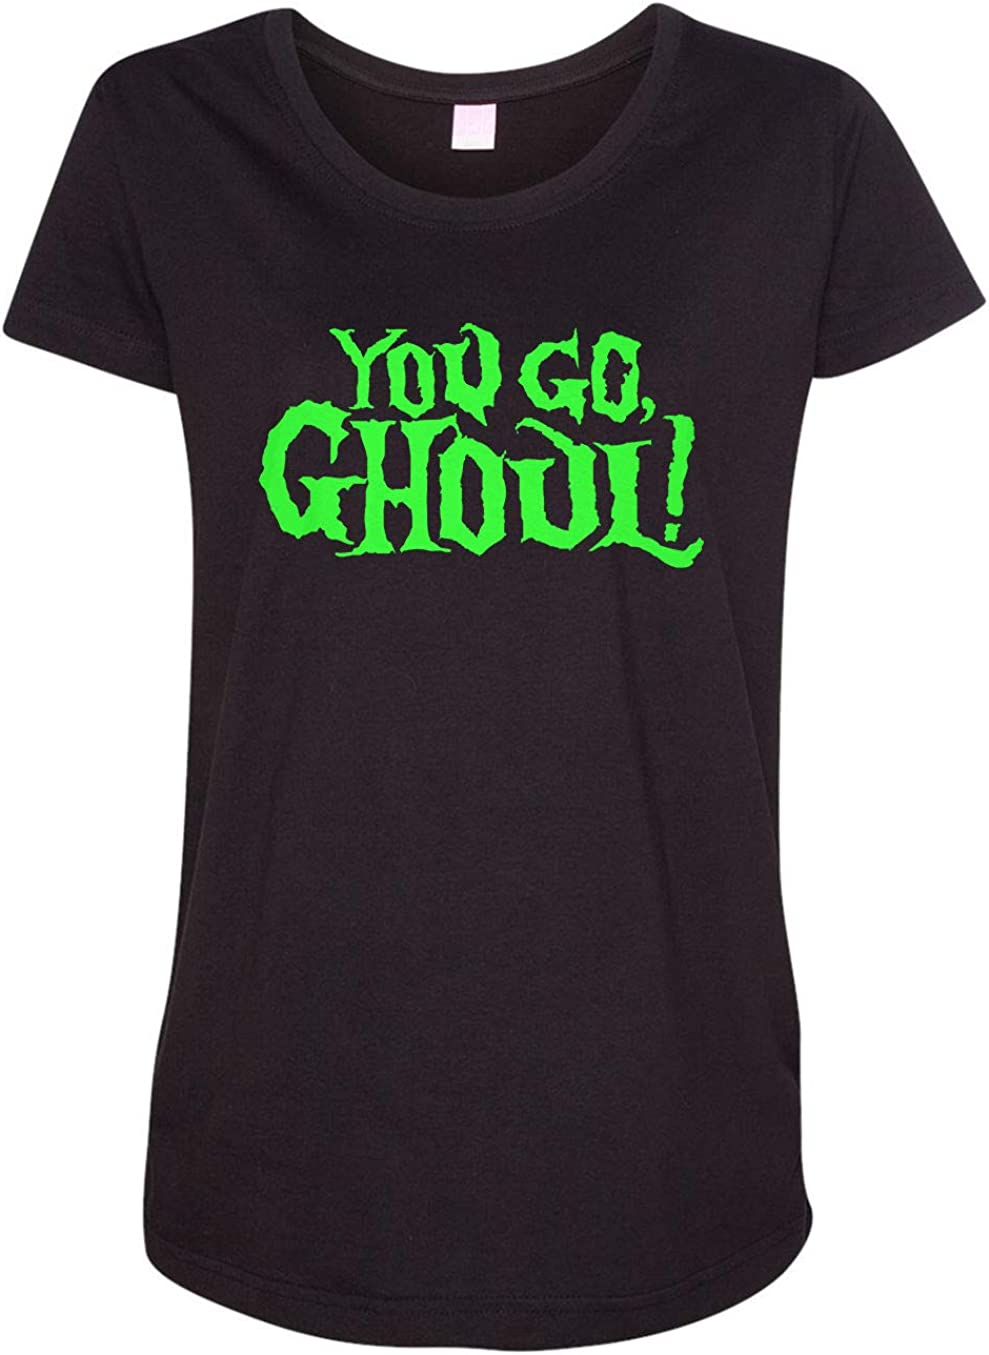 HARD EDGE DESIGN Women's Go You T-Shirt lowest price Ghoul Max 43% OFF